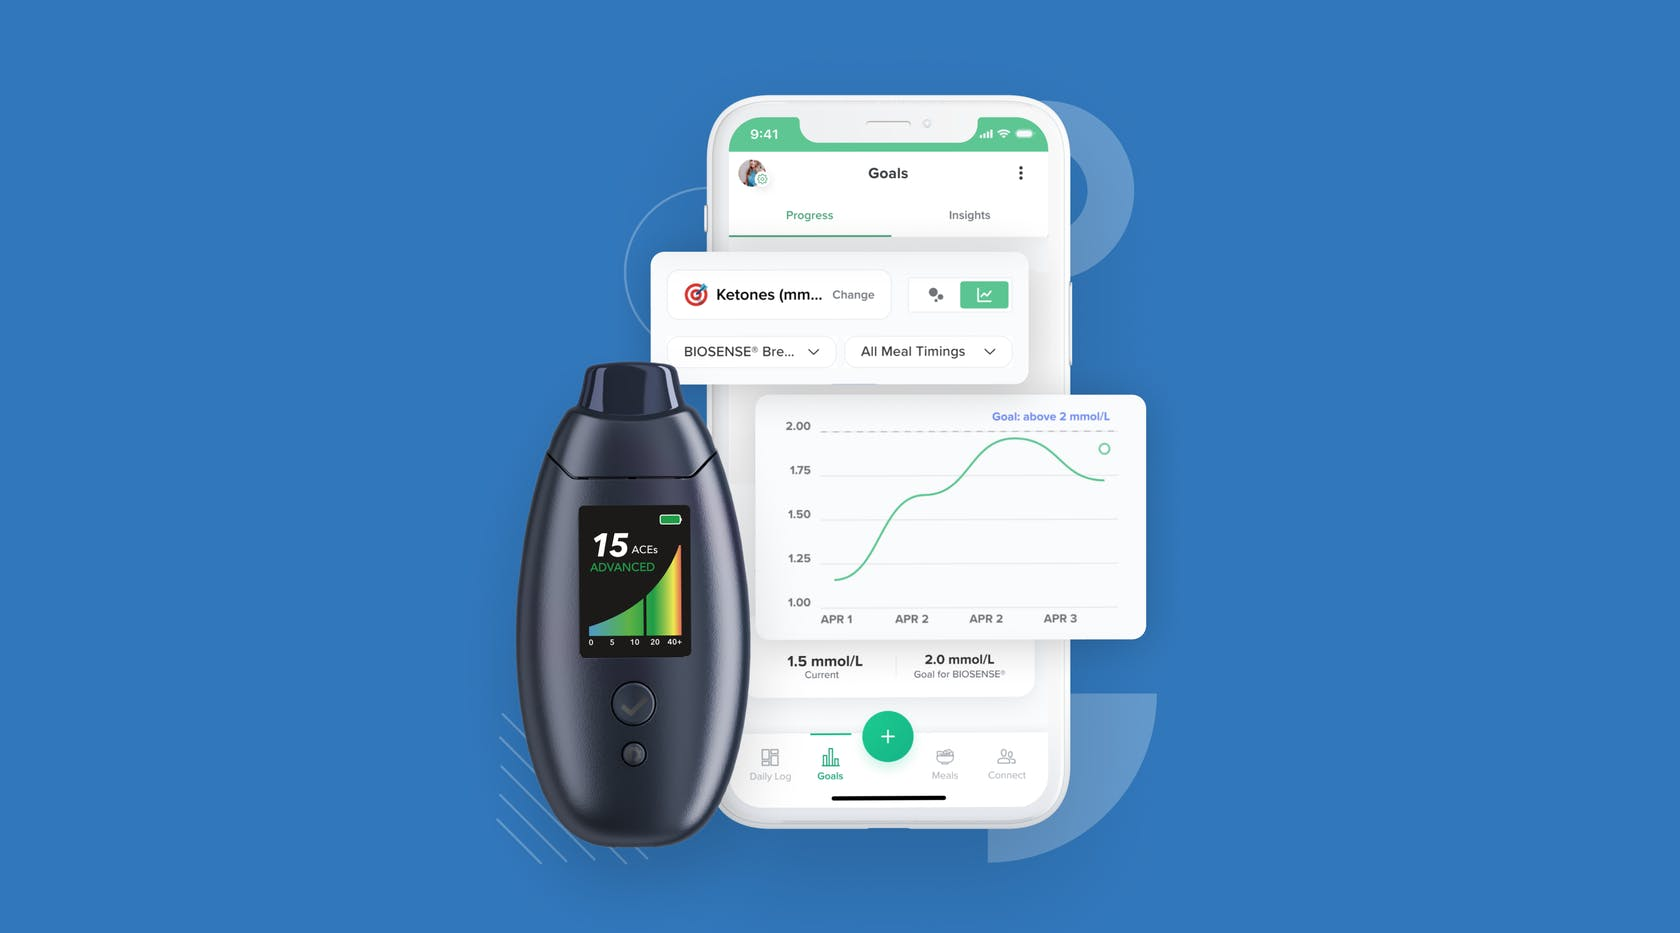 Weight loss just got even easier with BIOSENSE® + Carb Manager